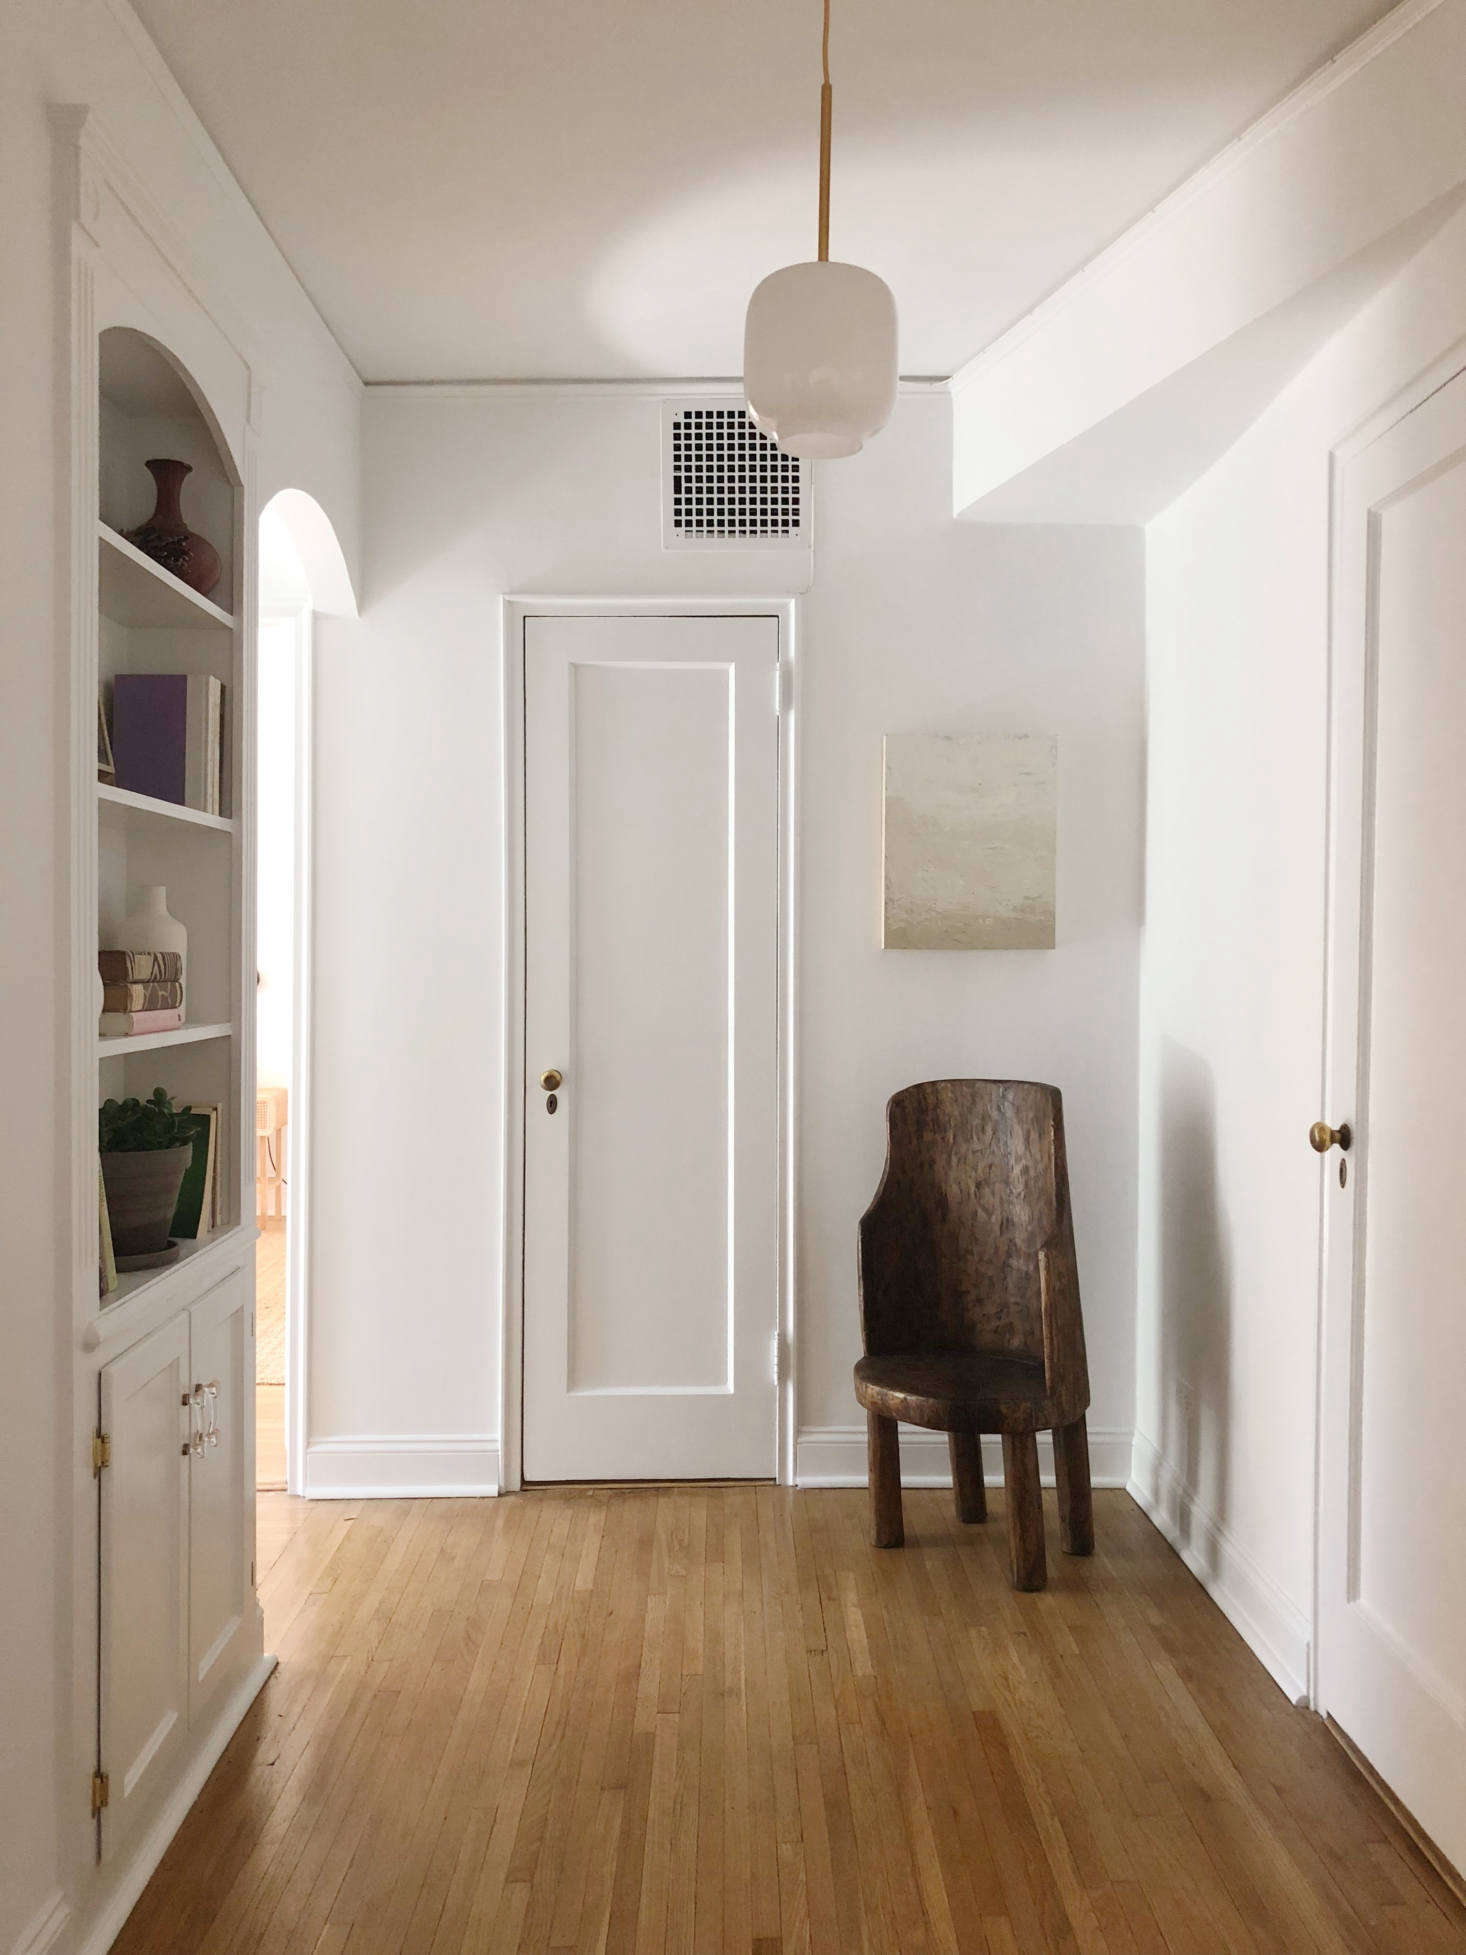 Flattering light is a staging essential. In a hall at 40 Prospect Park West, the Hoveys hung a current favorite of theirs, West Elm's Sculptural Milk Glass Pebble Pendant, $79.